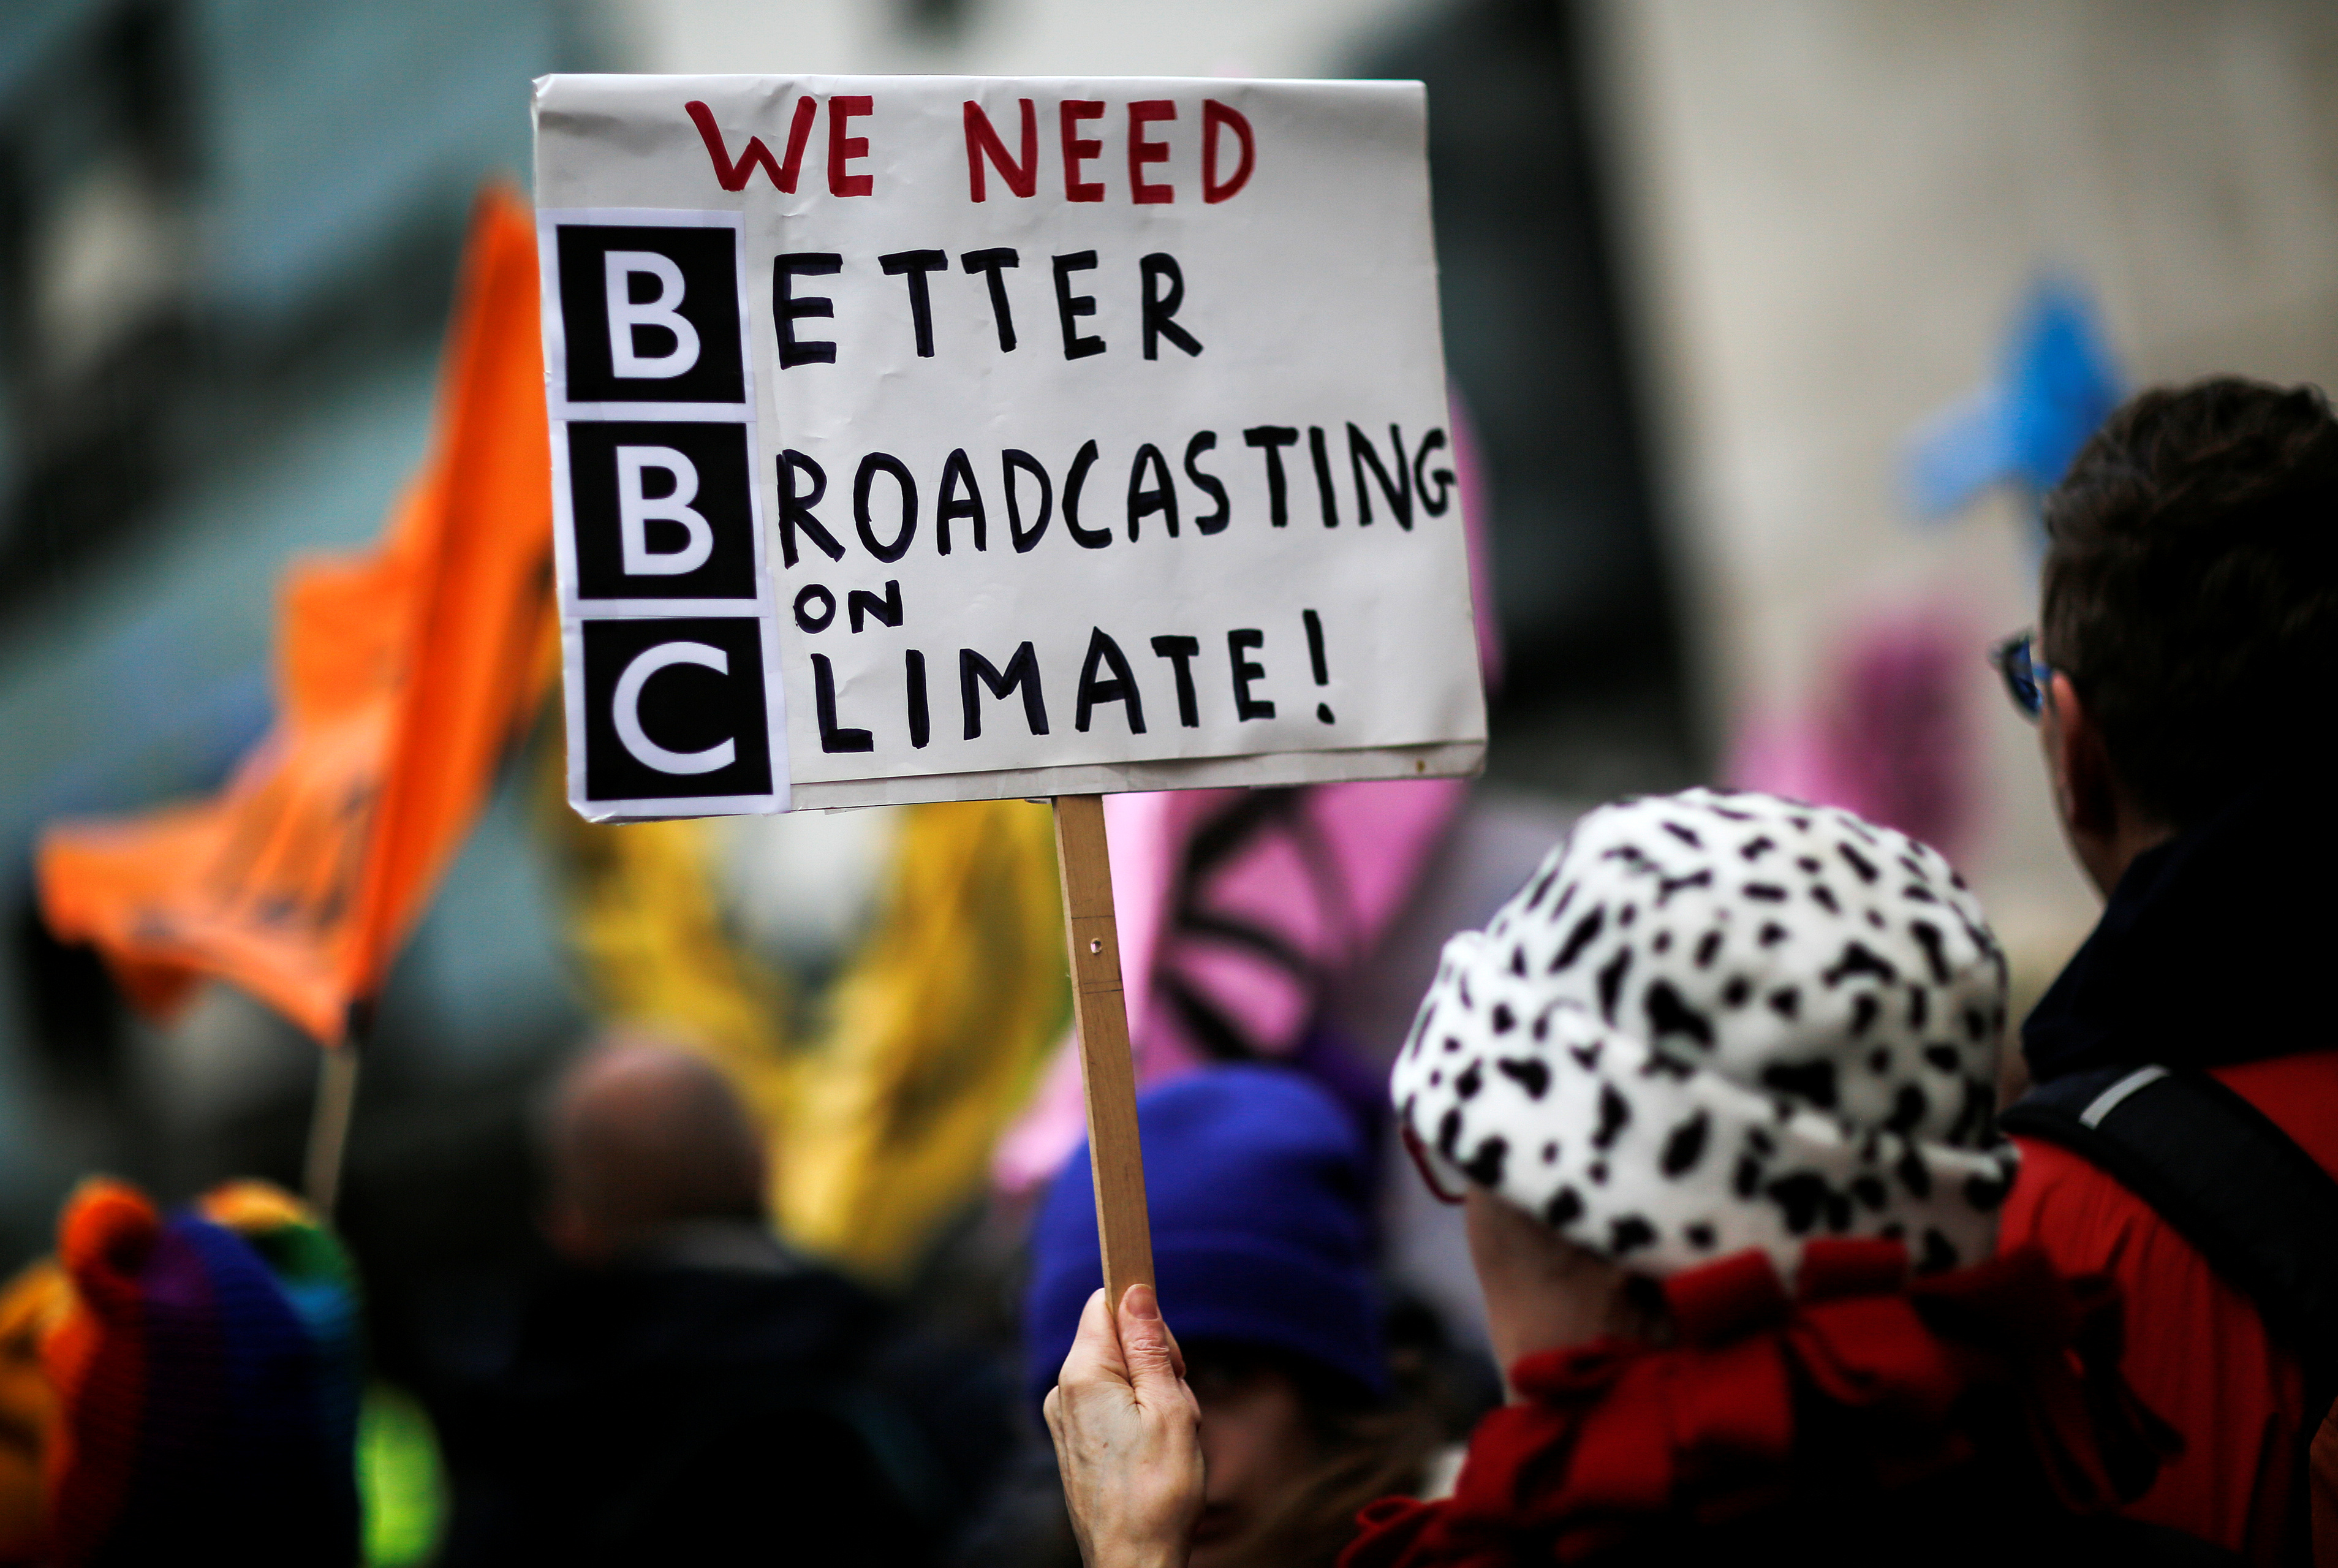 Protesters from the climate change pressure group Extinction Rebellion demonstrate outside the BBC offices in central London